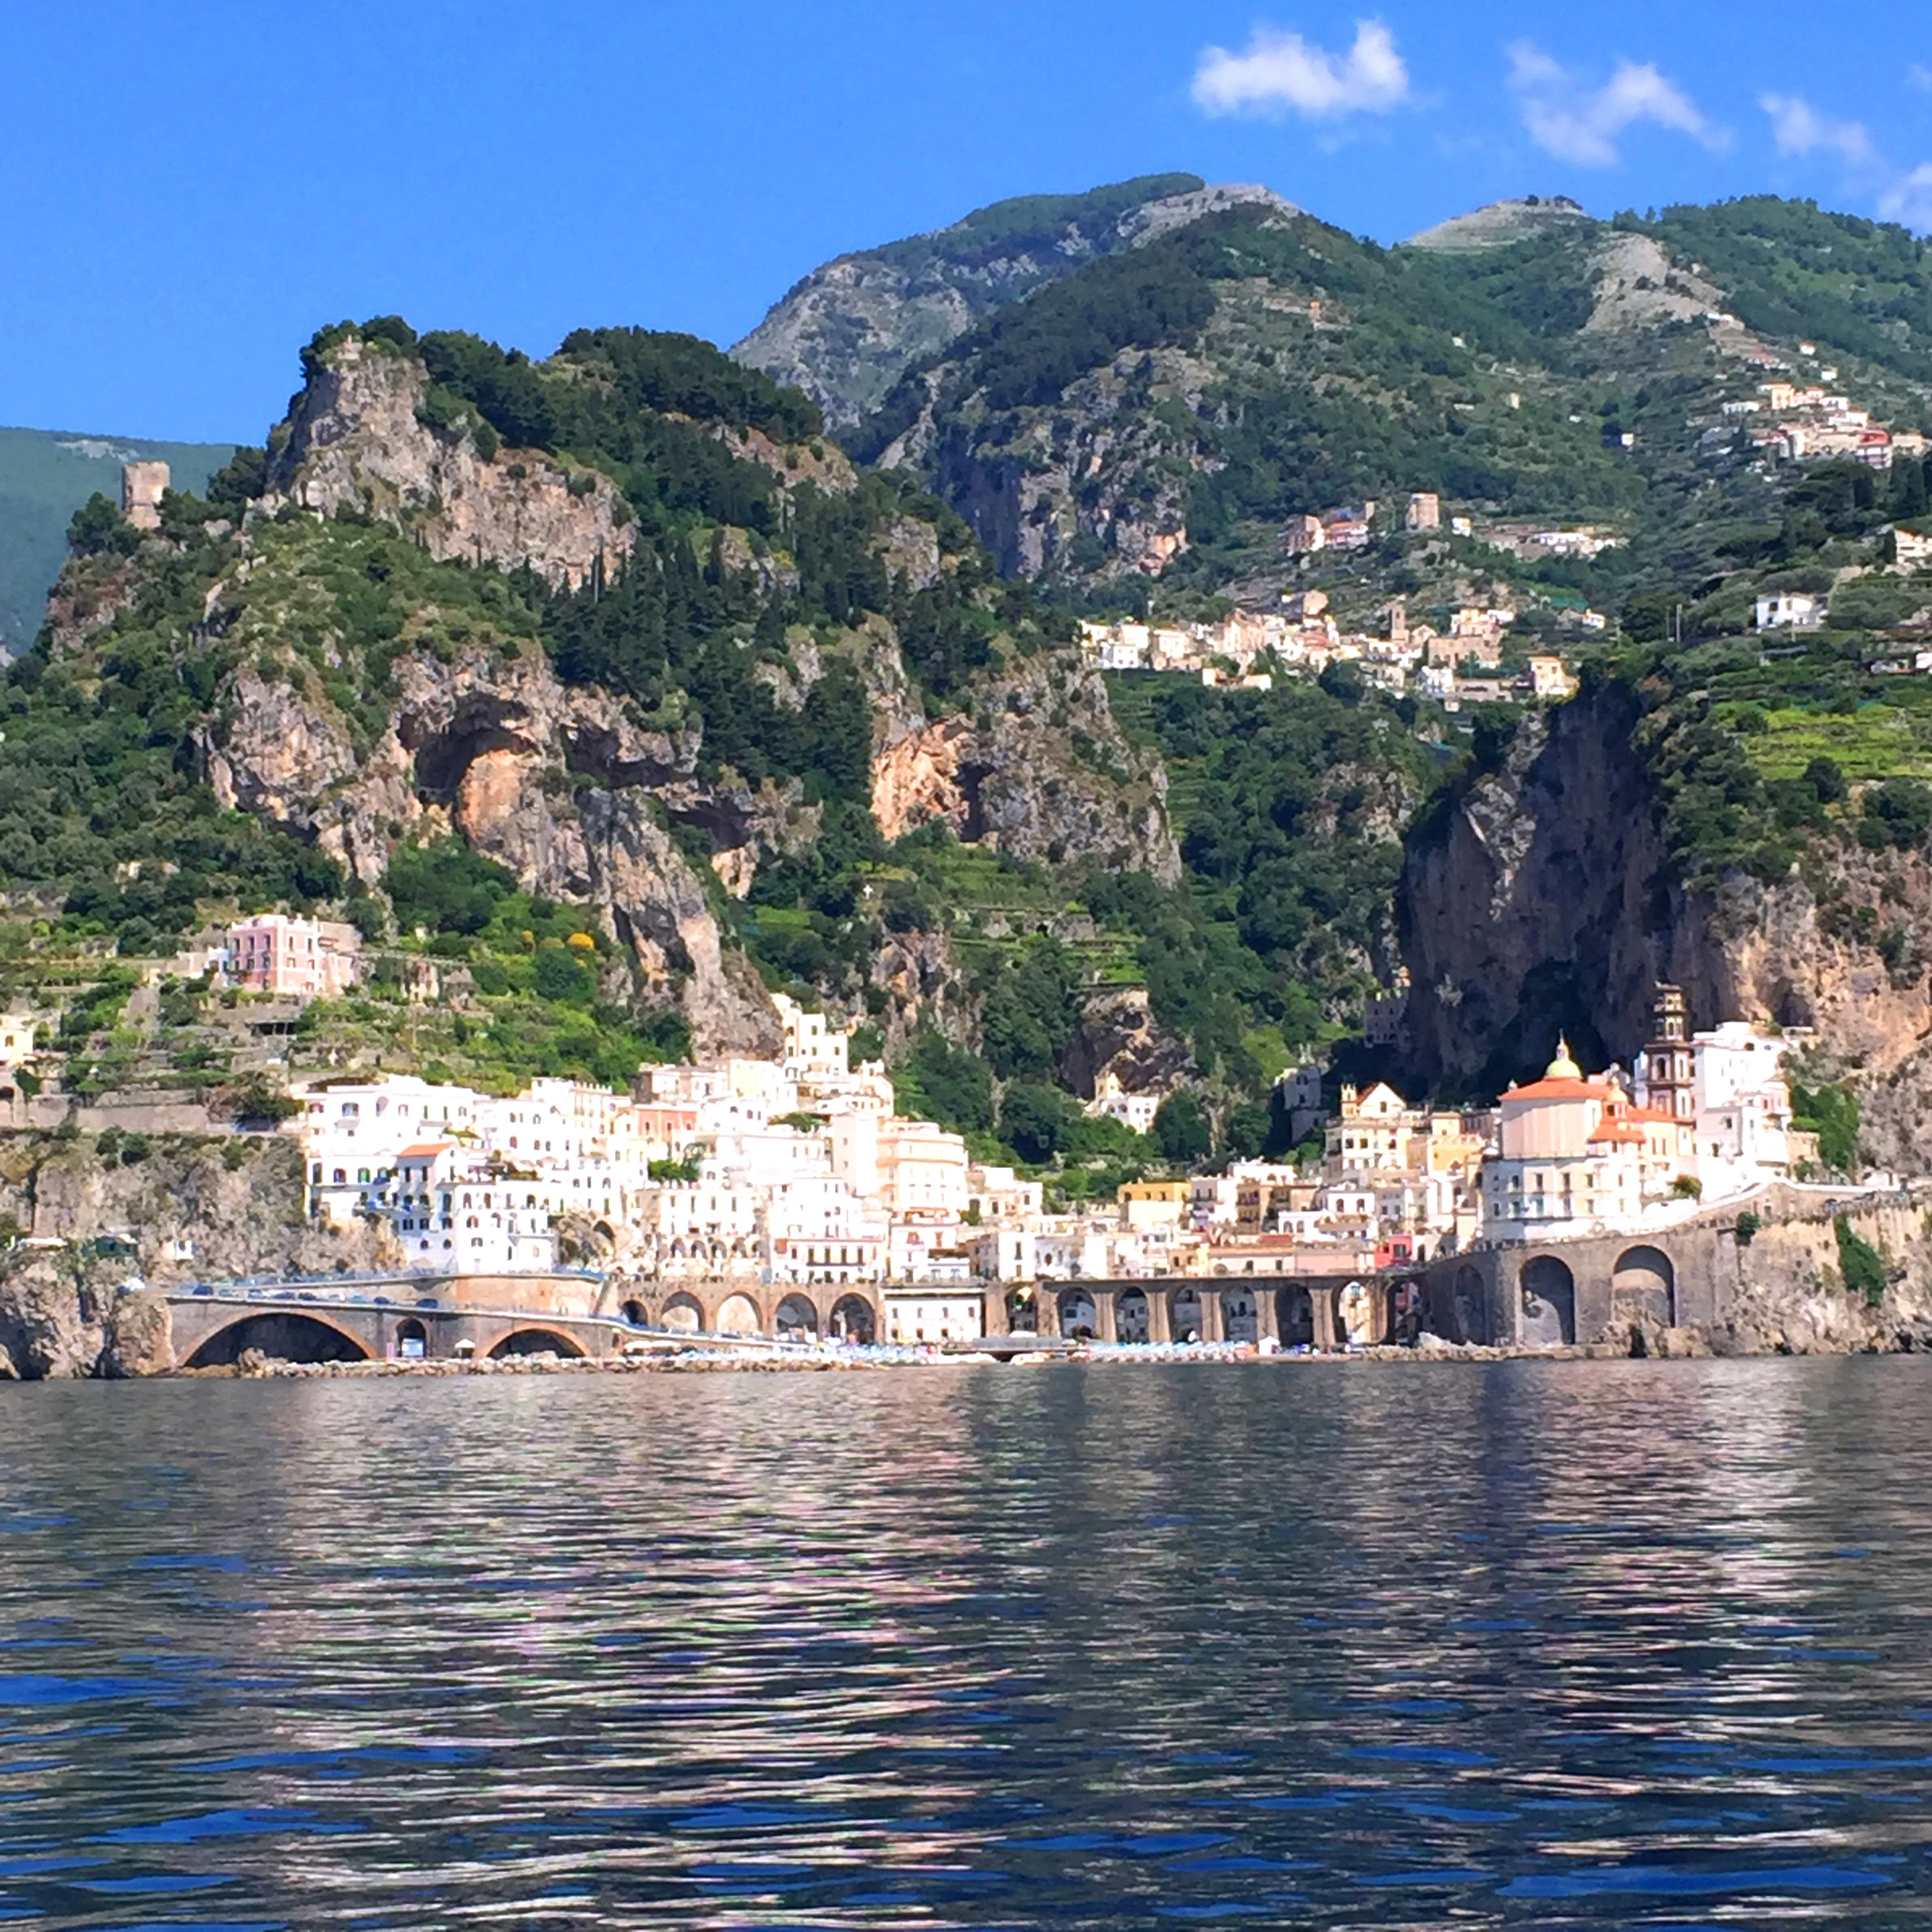 Fairytale Destination: Amalfi Coast